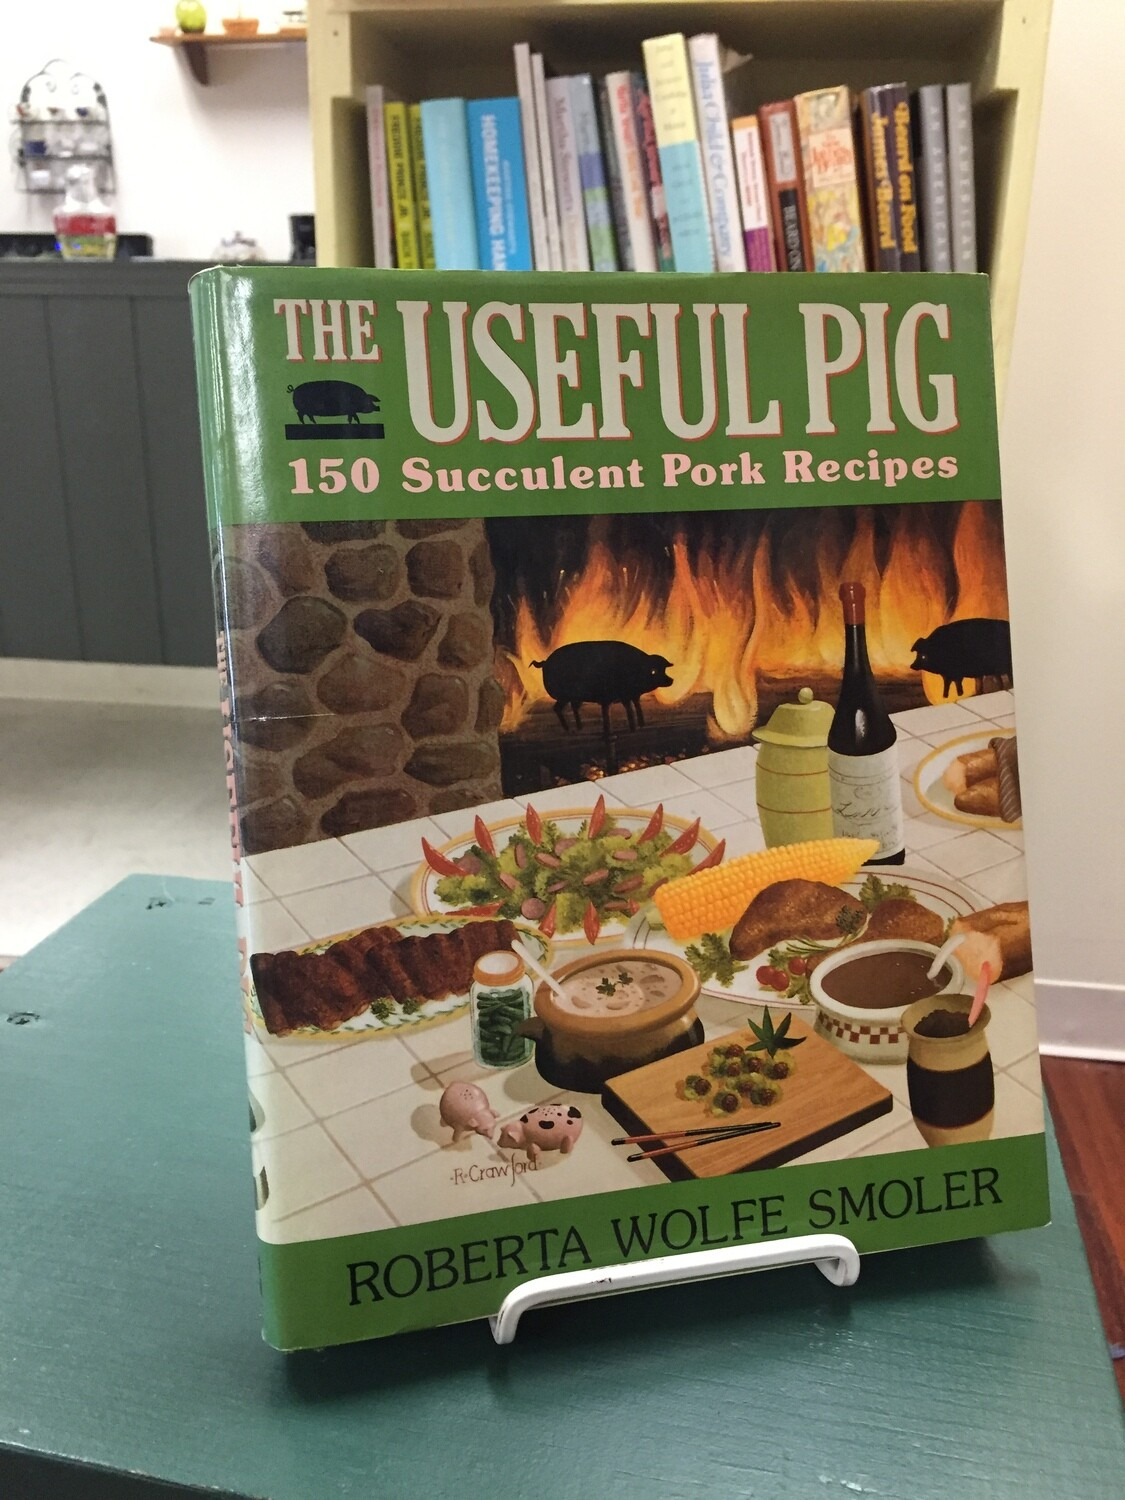 The Useful Pig